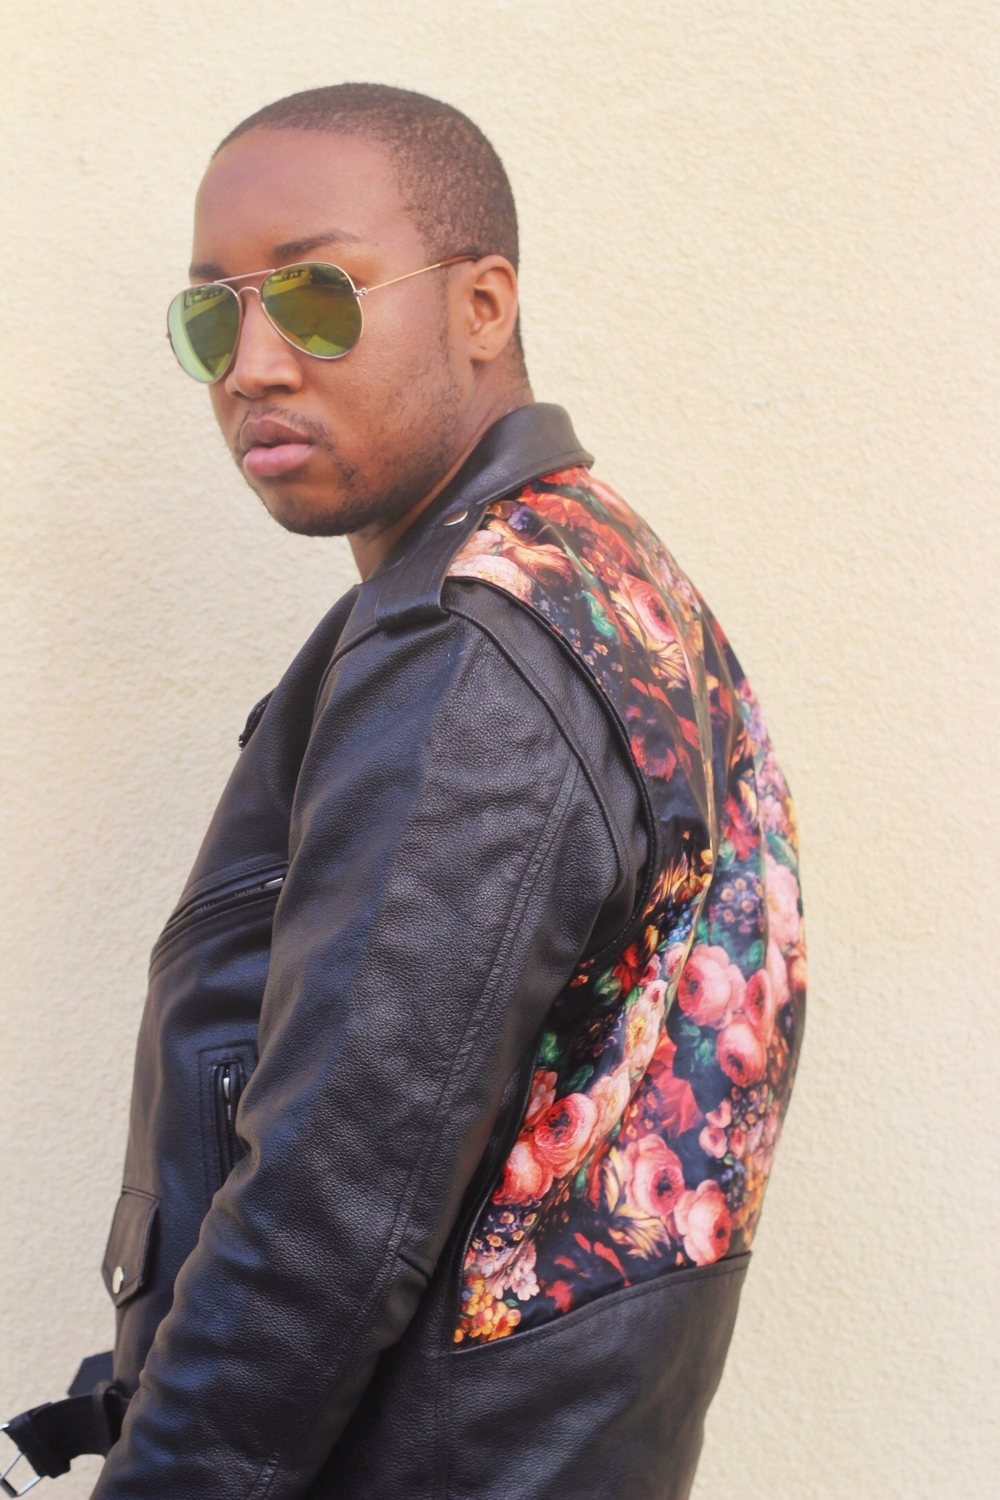 Shot by Mia McNeil Jacket - Reclaimed Vintage Sunglasses - Ebay'd